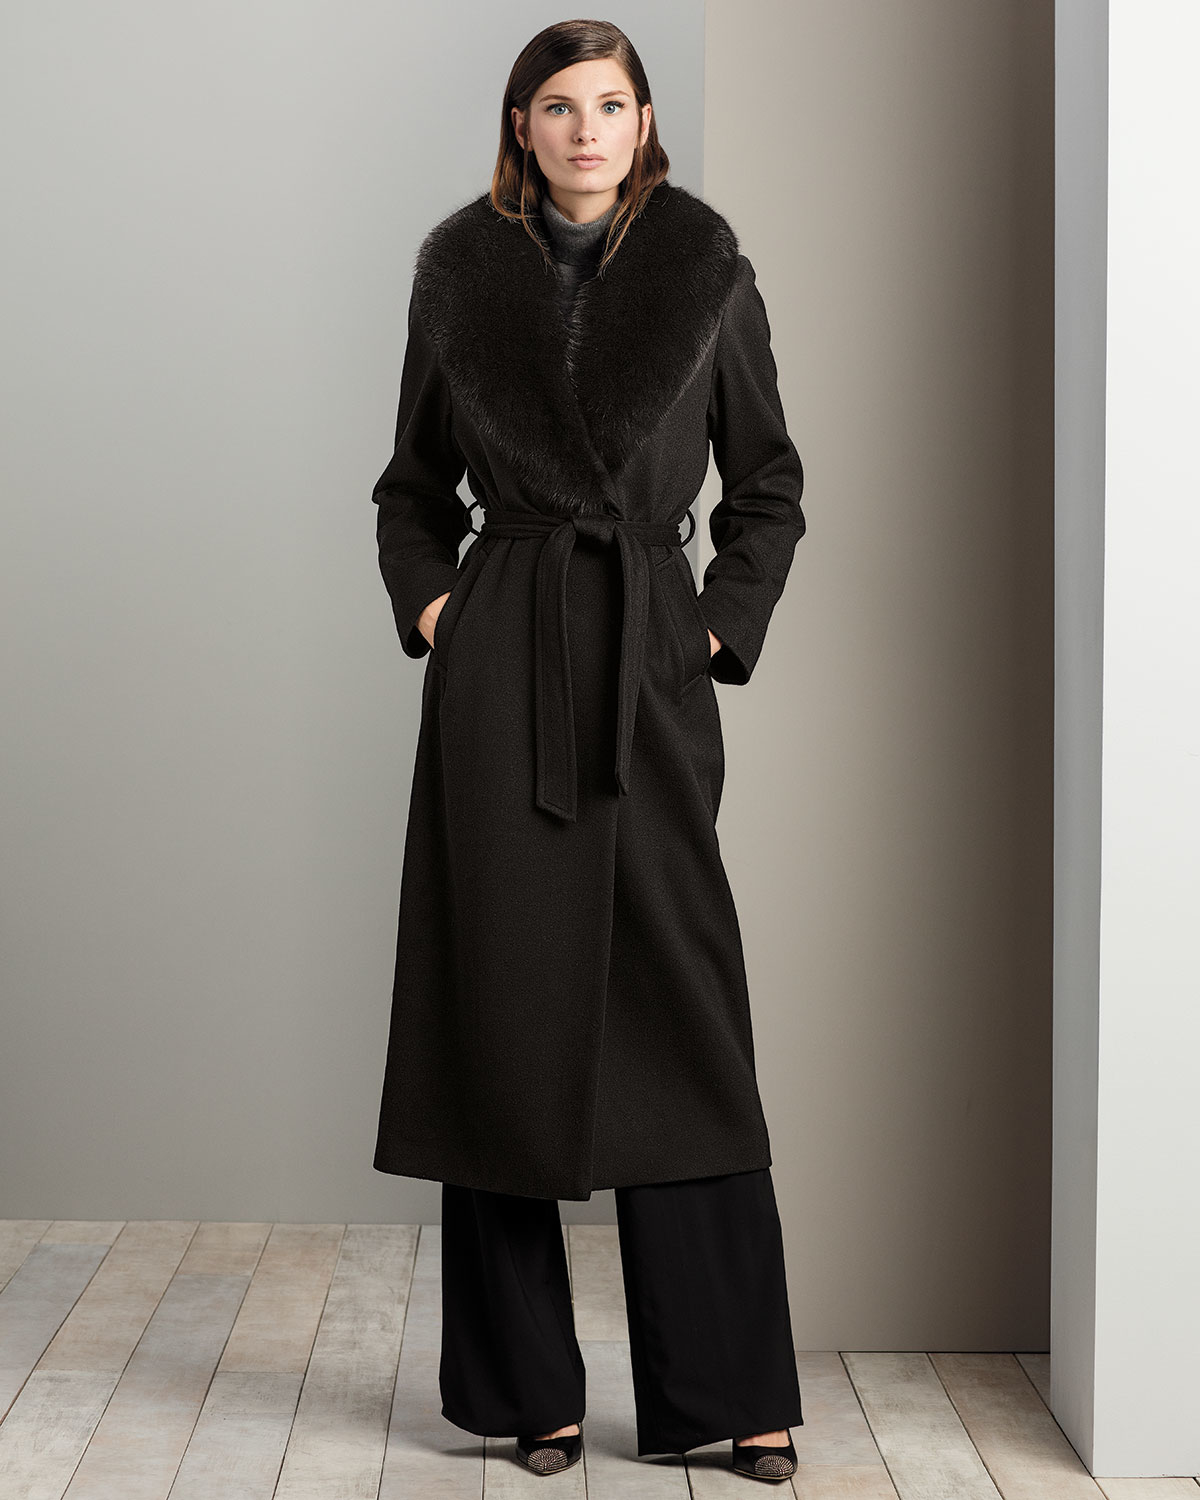 Sofia cashmere Fur-collar Belted Long Wrap Coat in Black - Save 29 ...